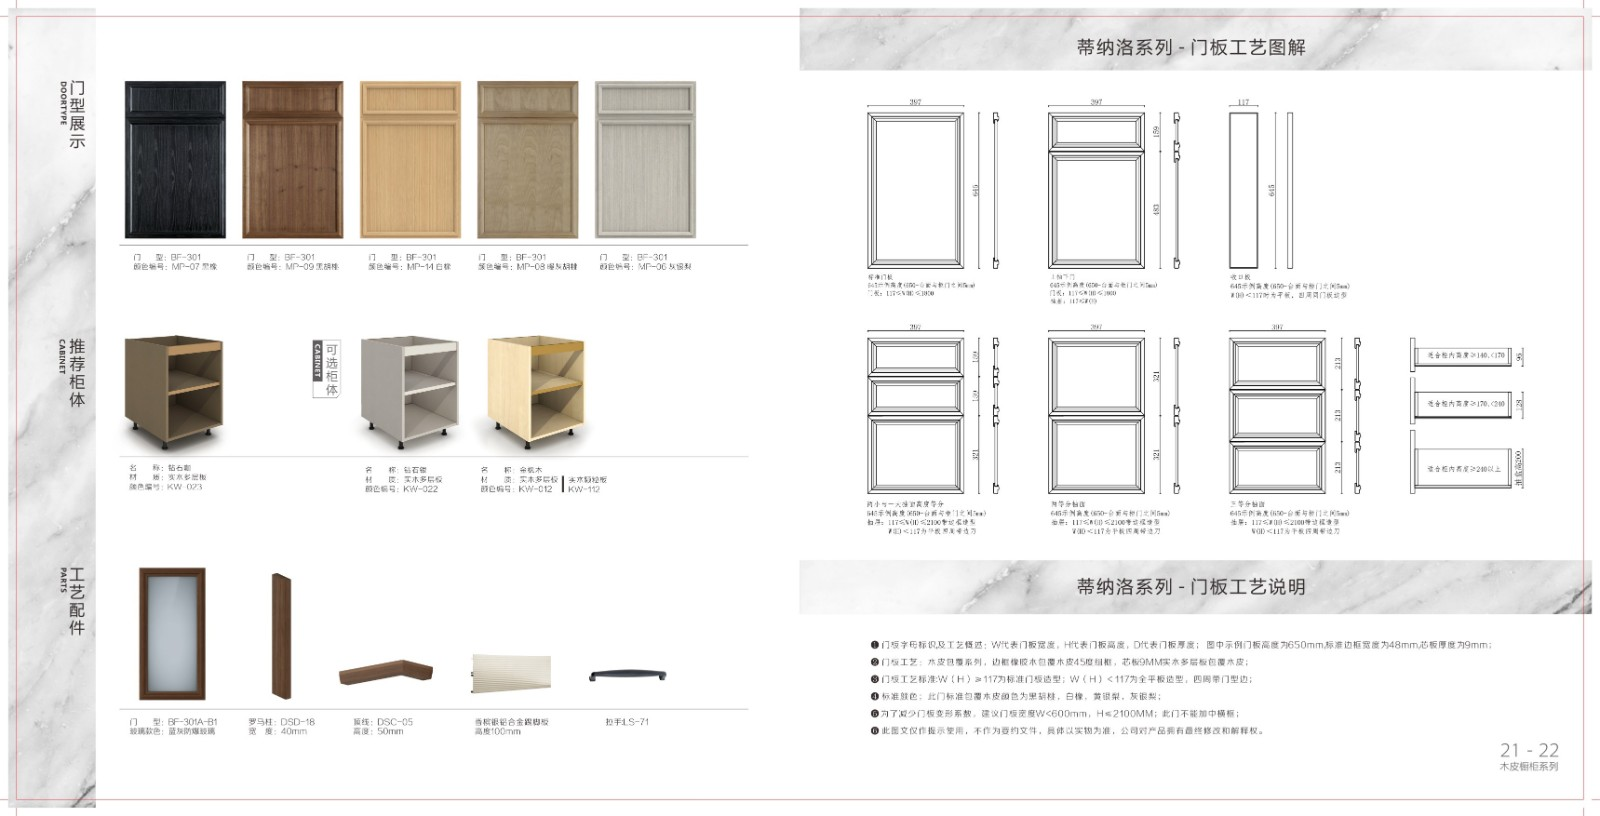 Sendiao Furniture sdk05 custom wood kitchen cabinets company a living room-5